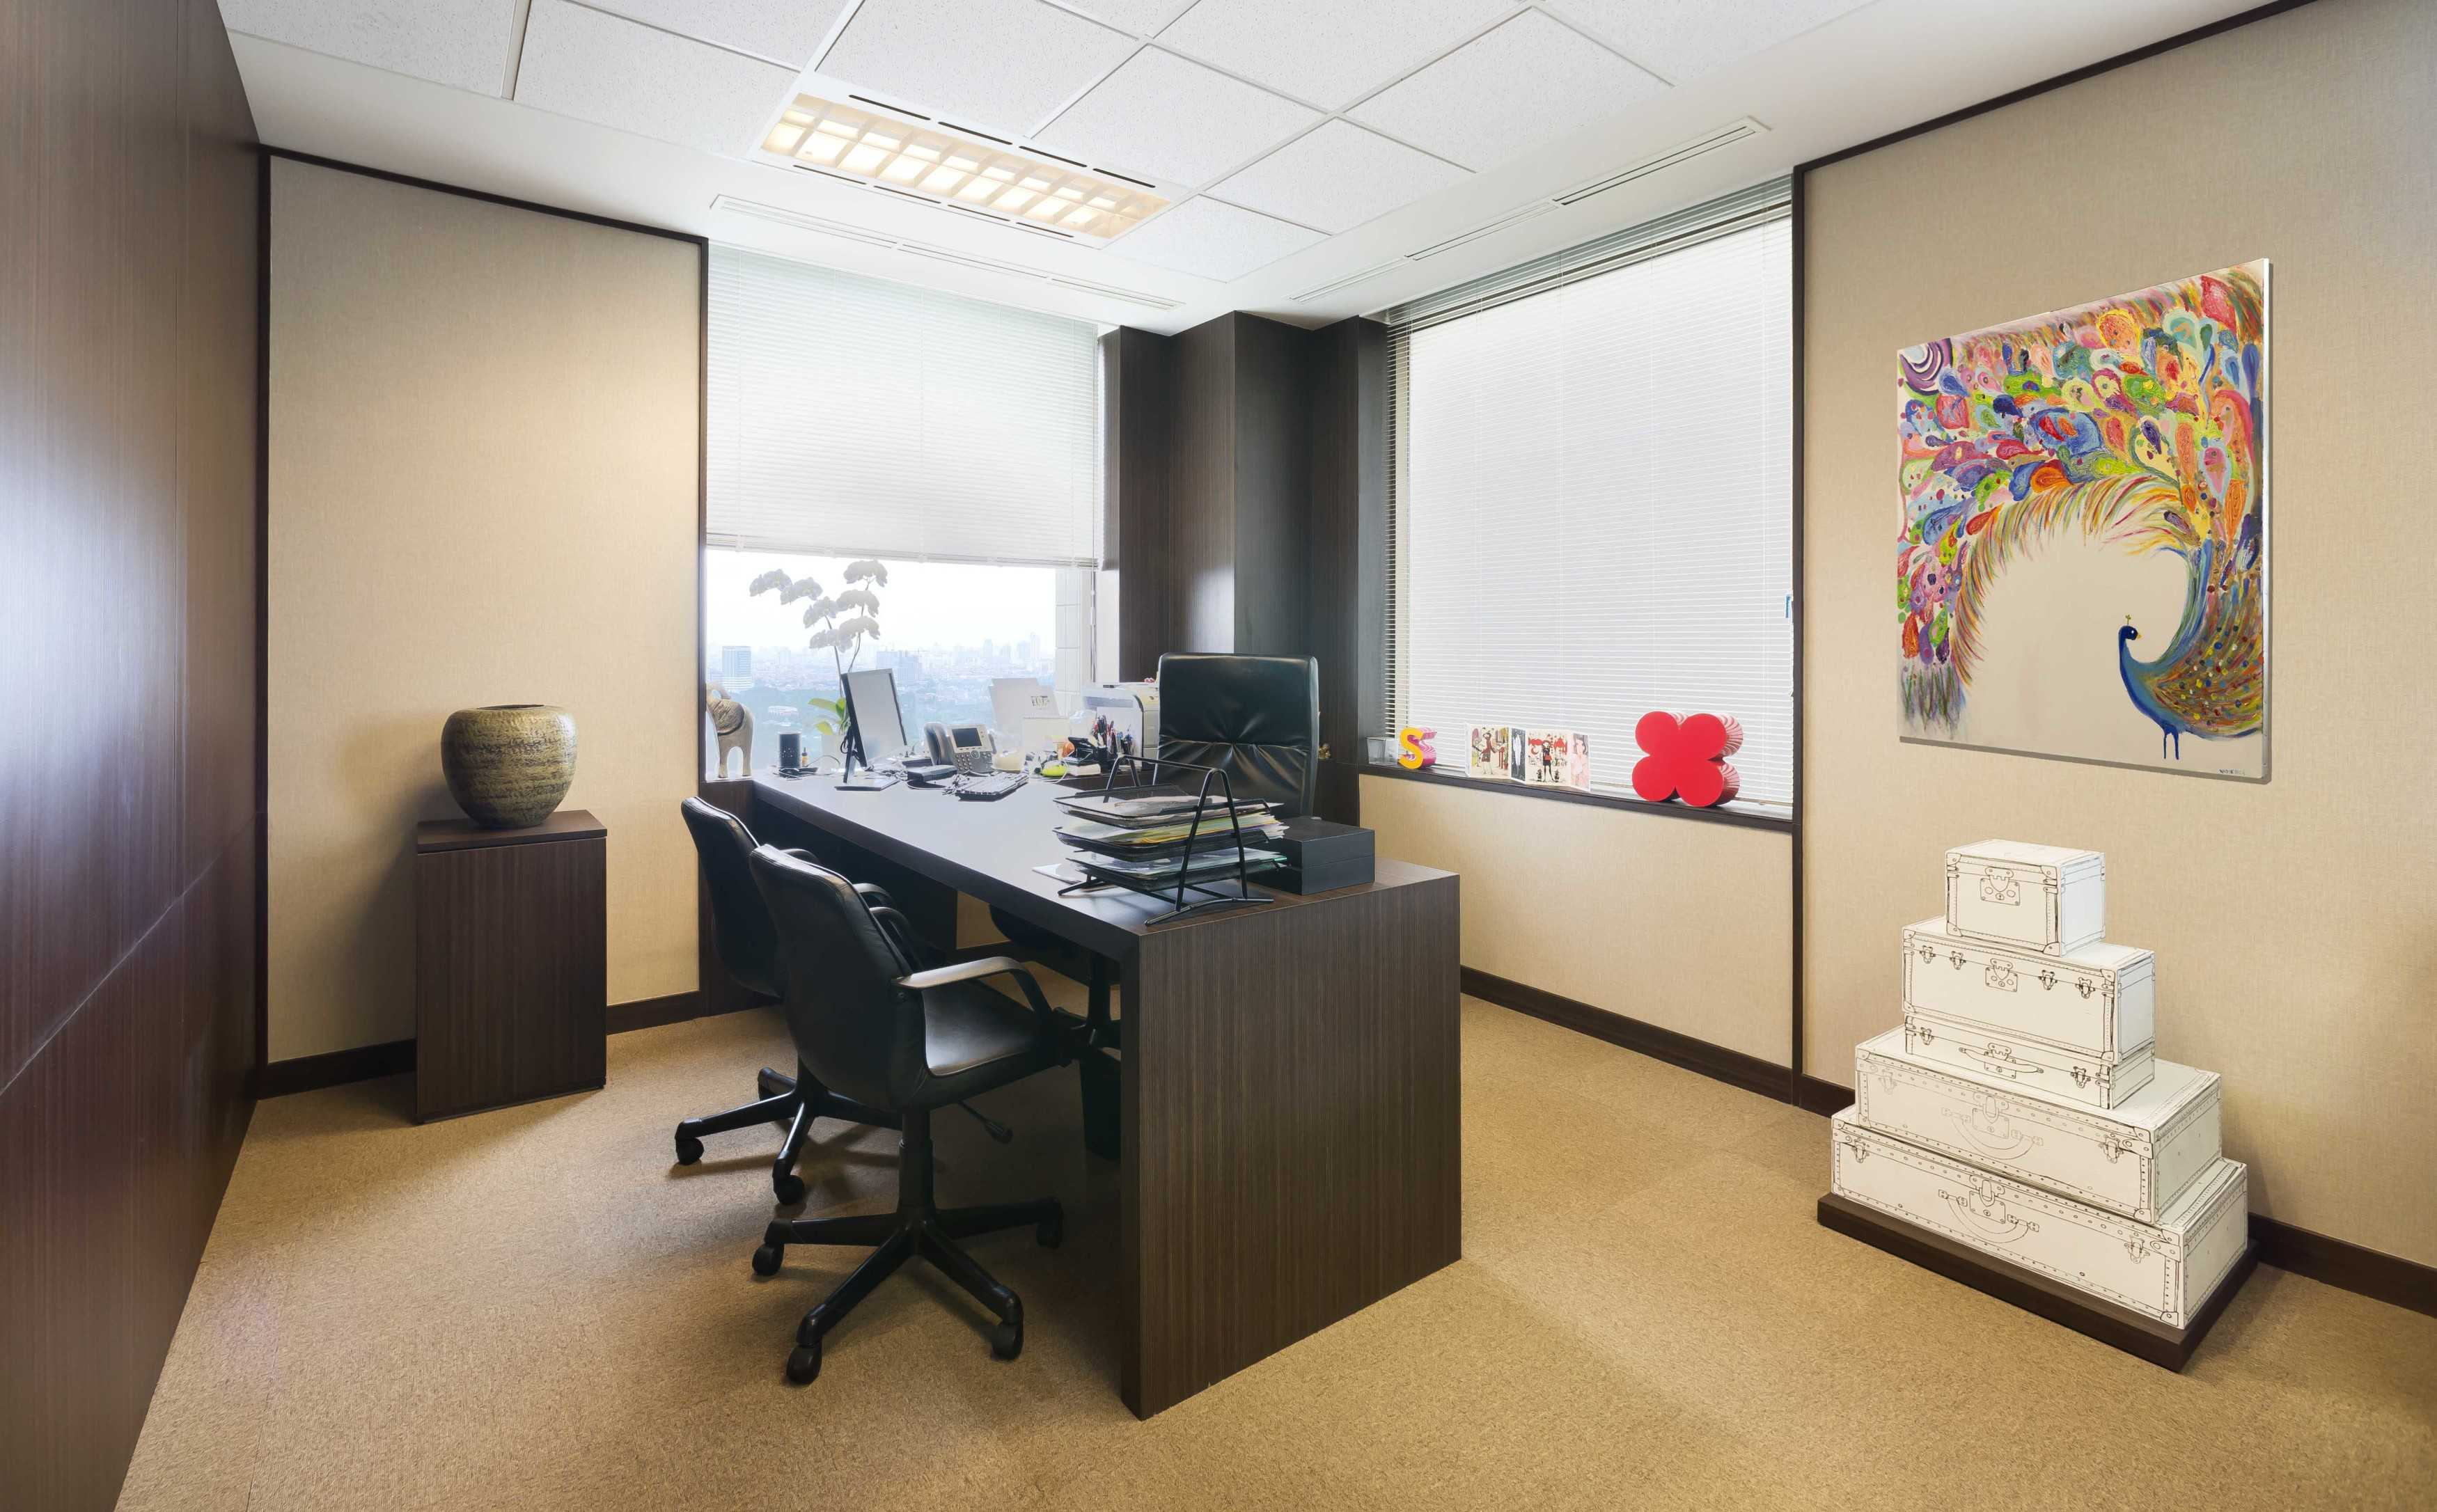 Chrystalline Artchitect Pt. Luvitasindo Office  Jakarta, Indonesia Jakarta, Indonesia Head Office Room   8473